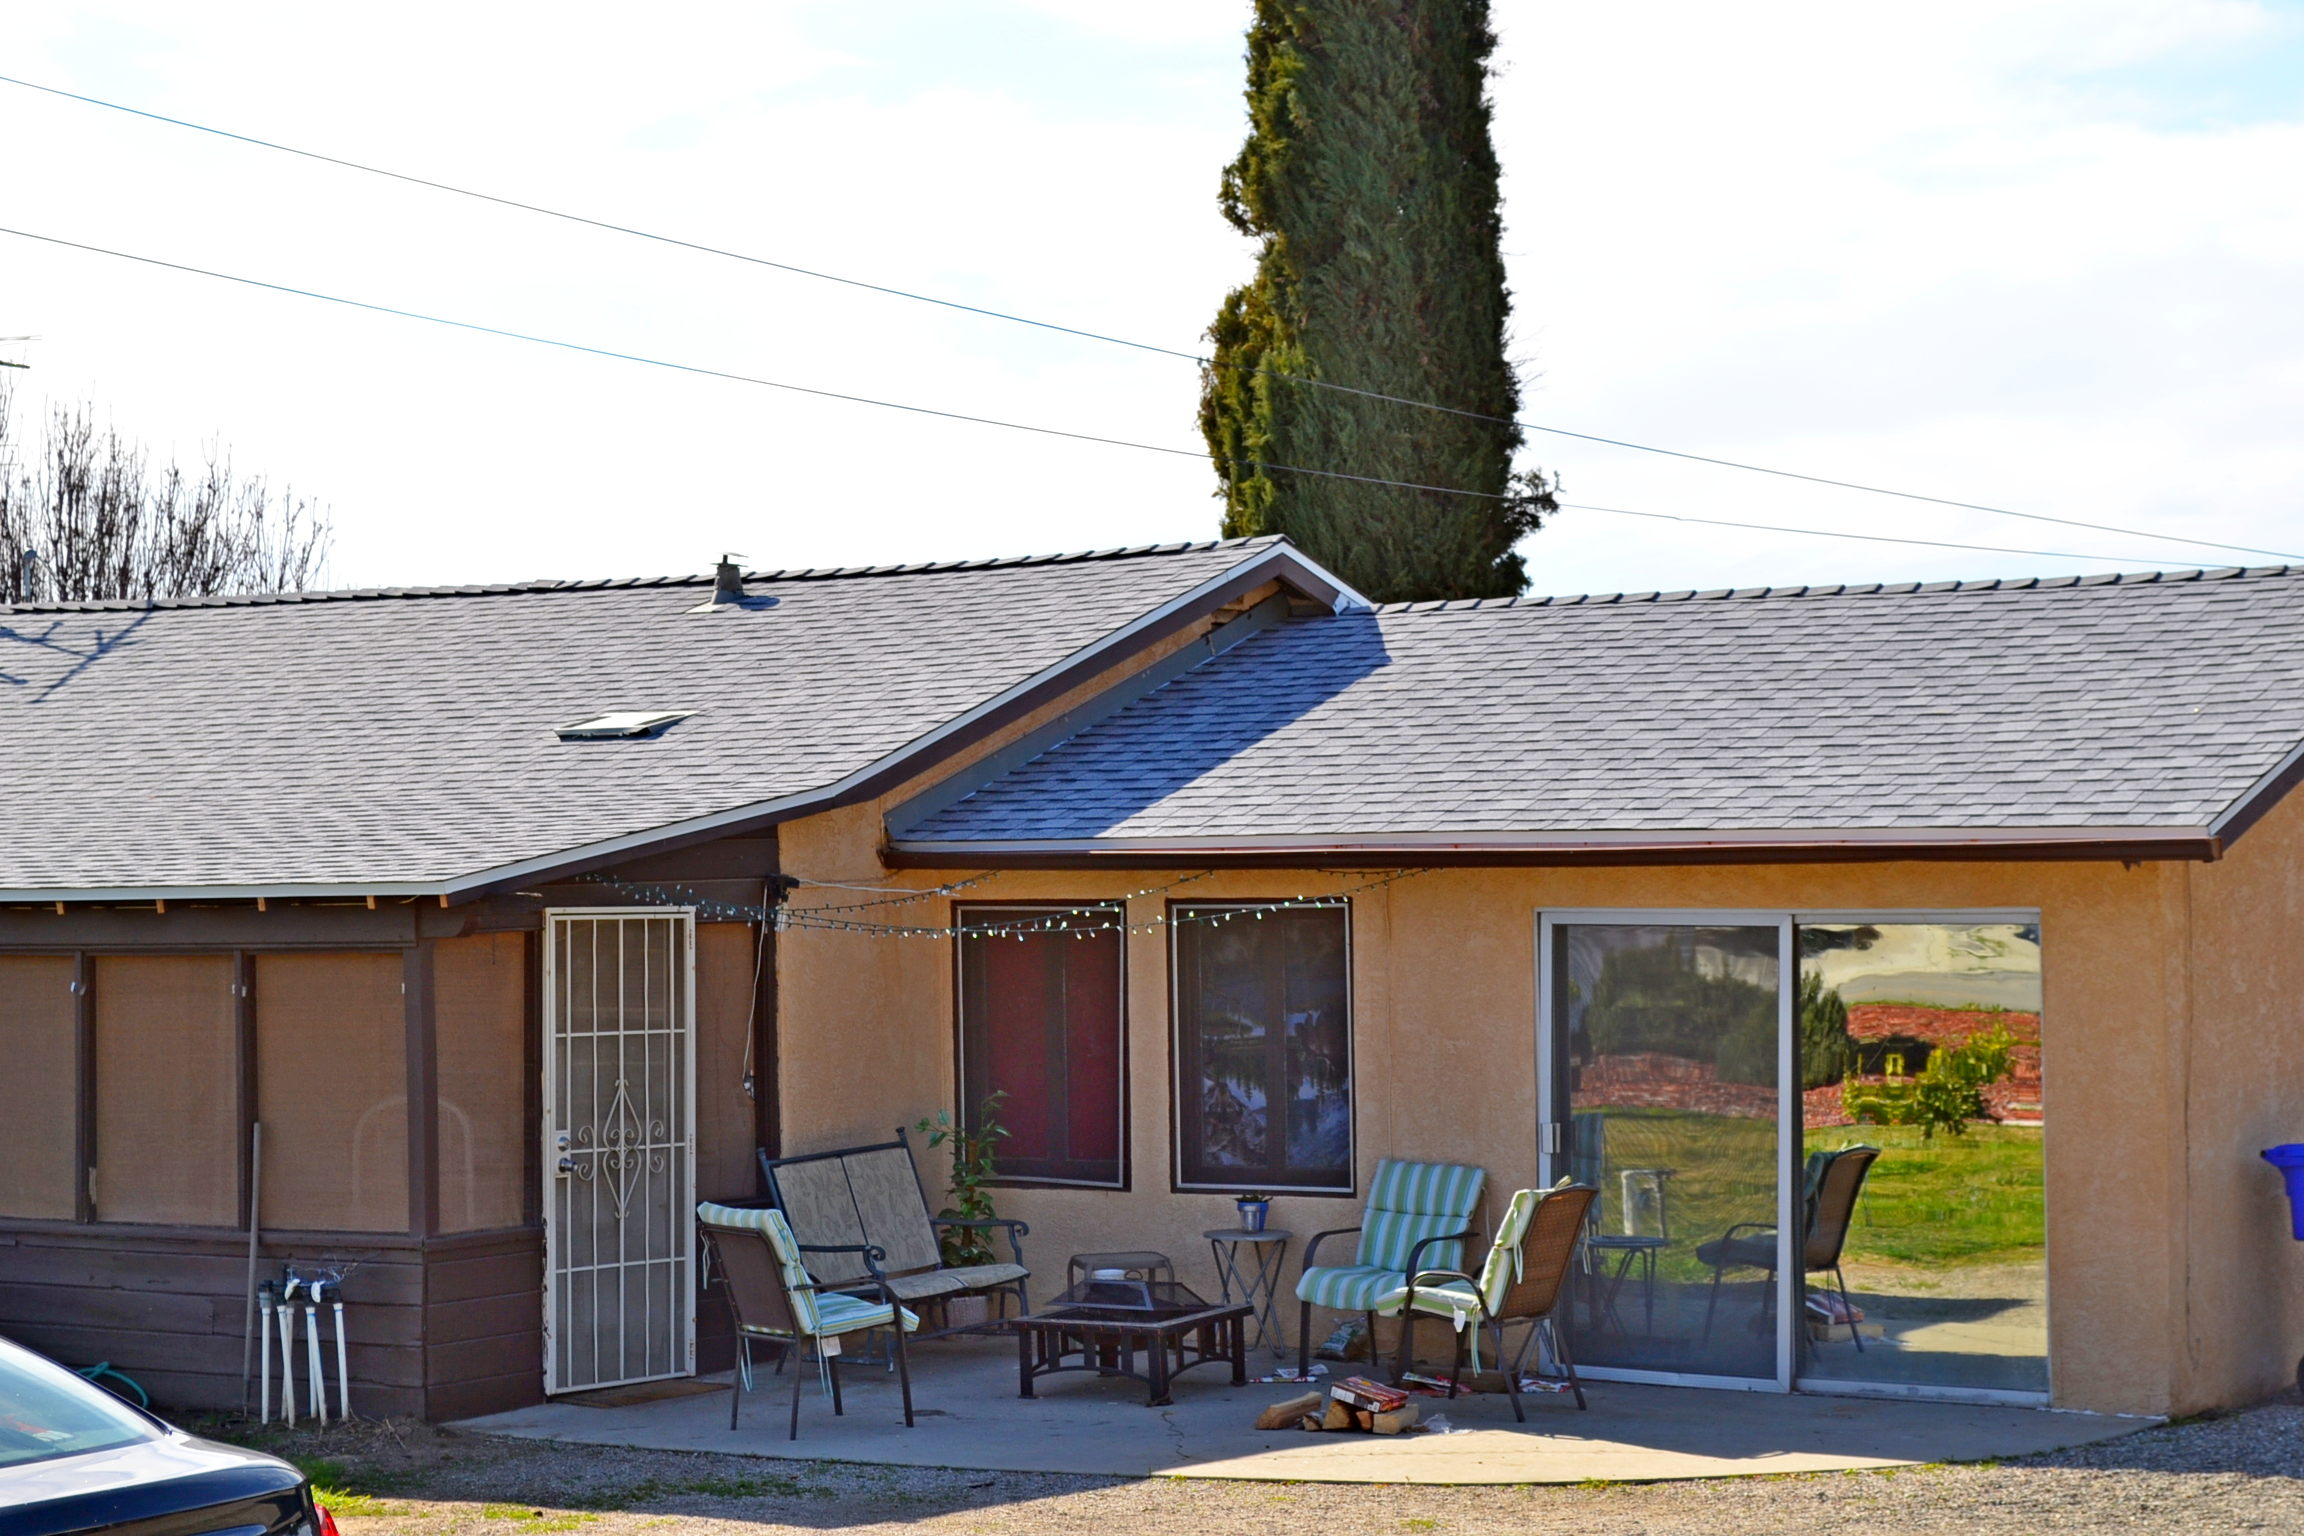 Project: Roofing Replacement in Yucaipa